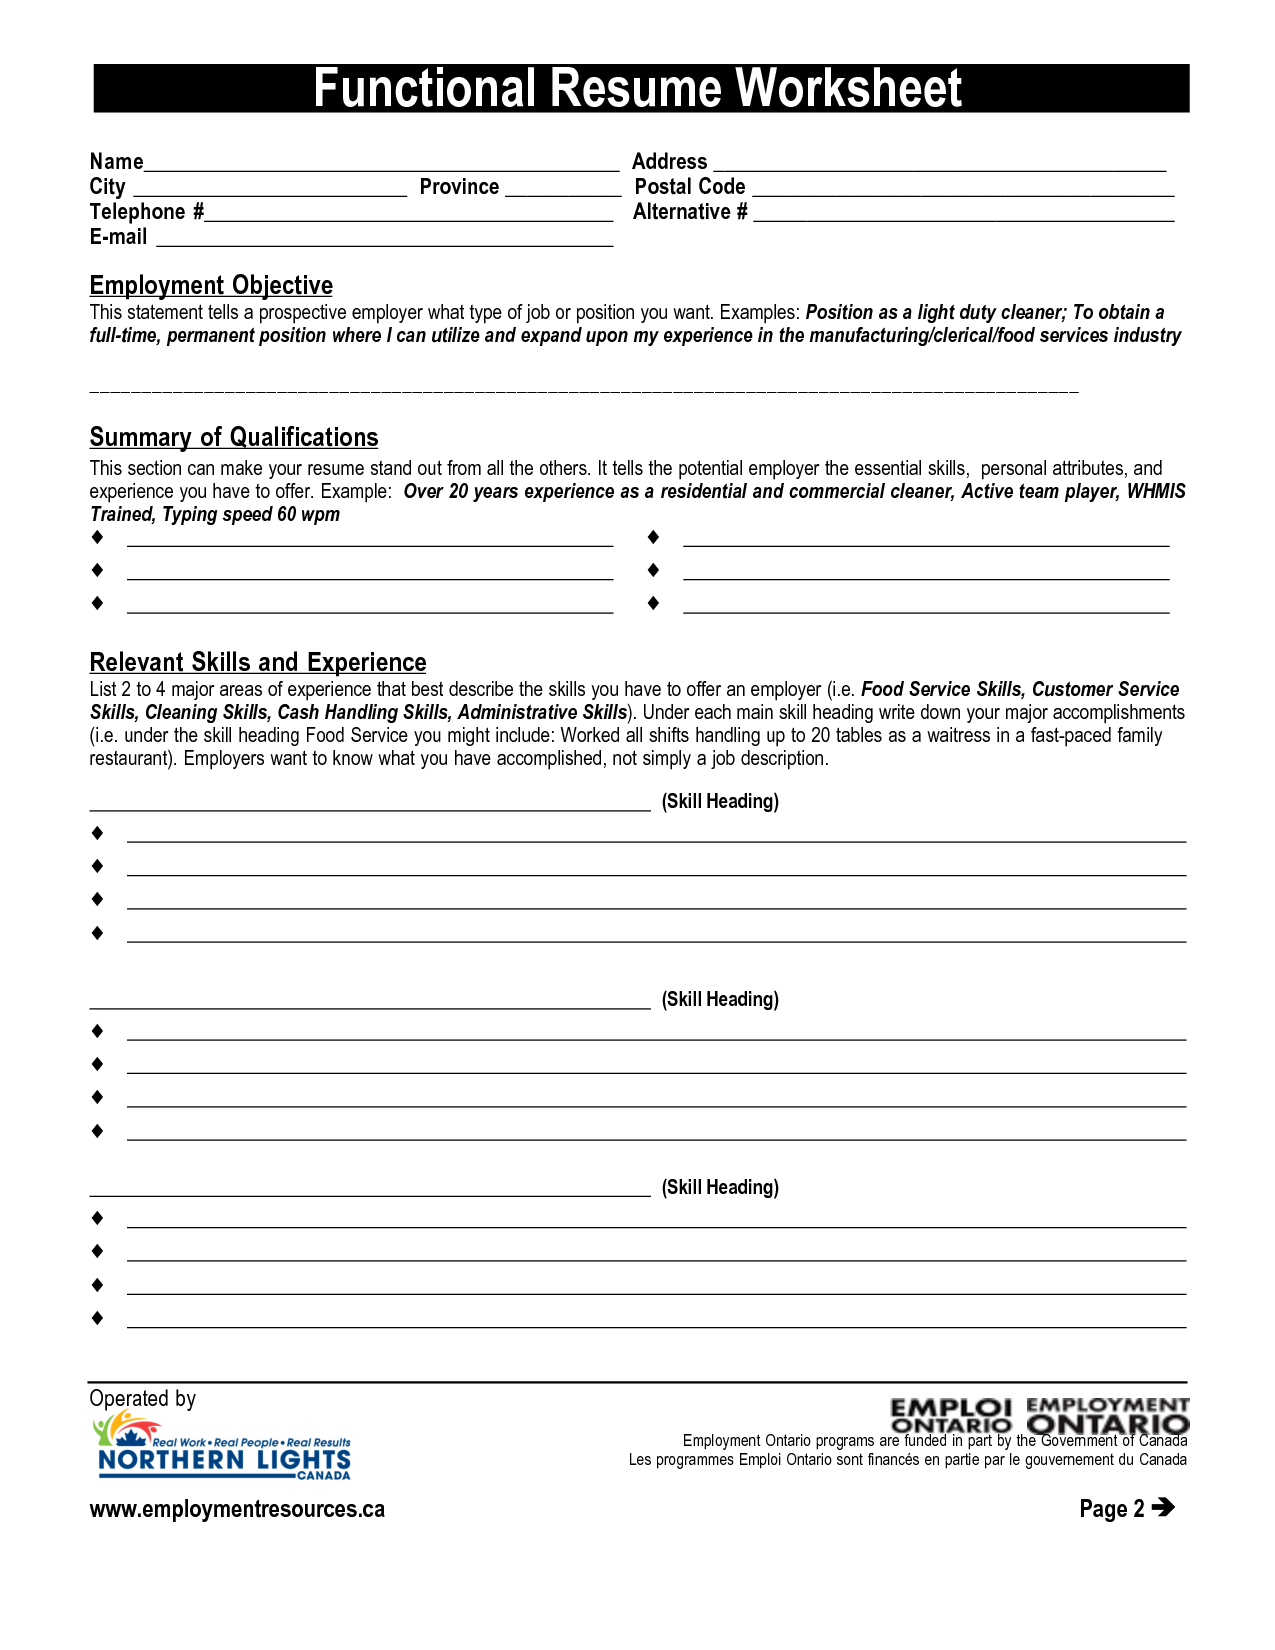 Achievements to Put on Resume Complete Guide 30 Examples – Resume Worksheet for High School Students